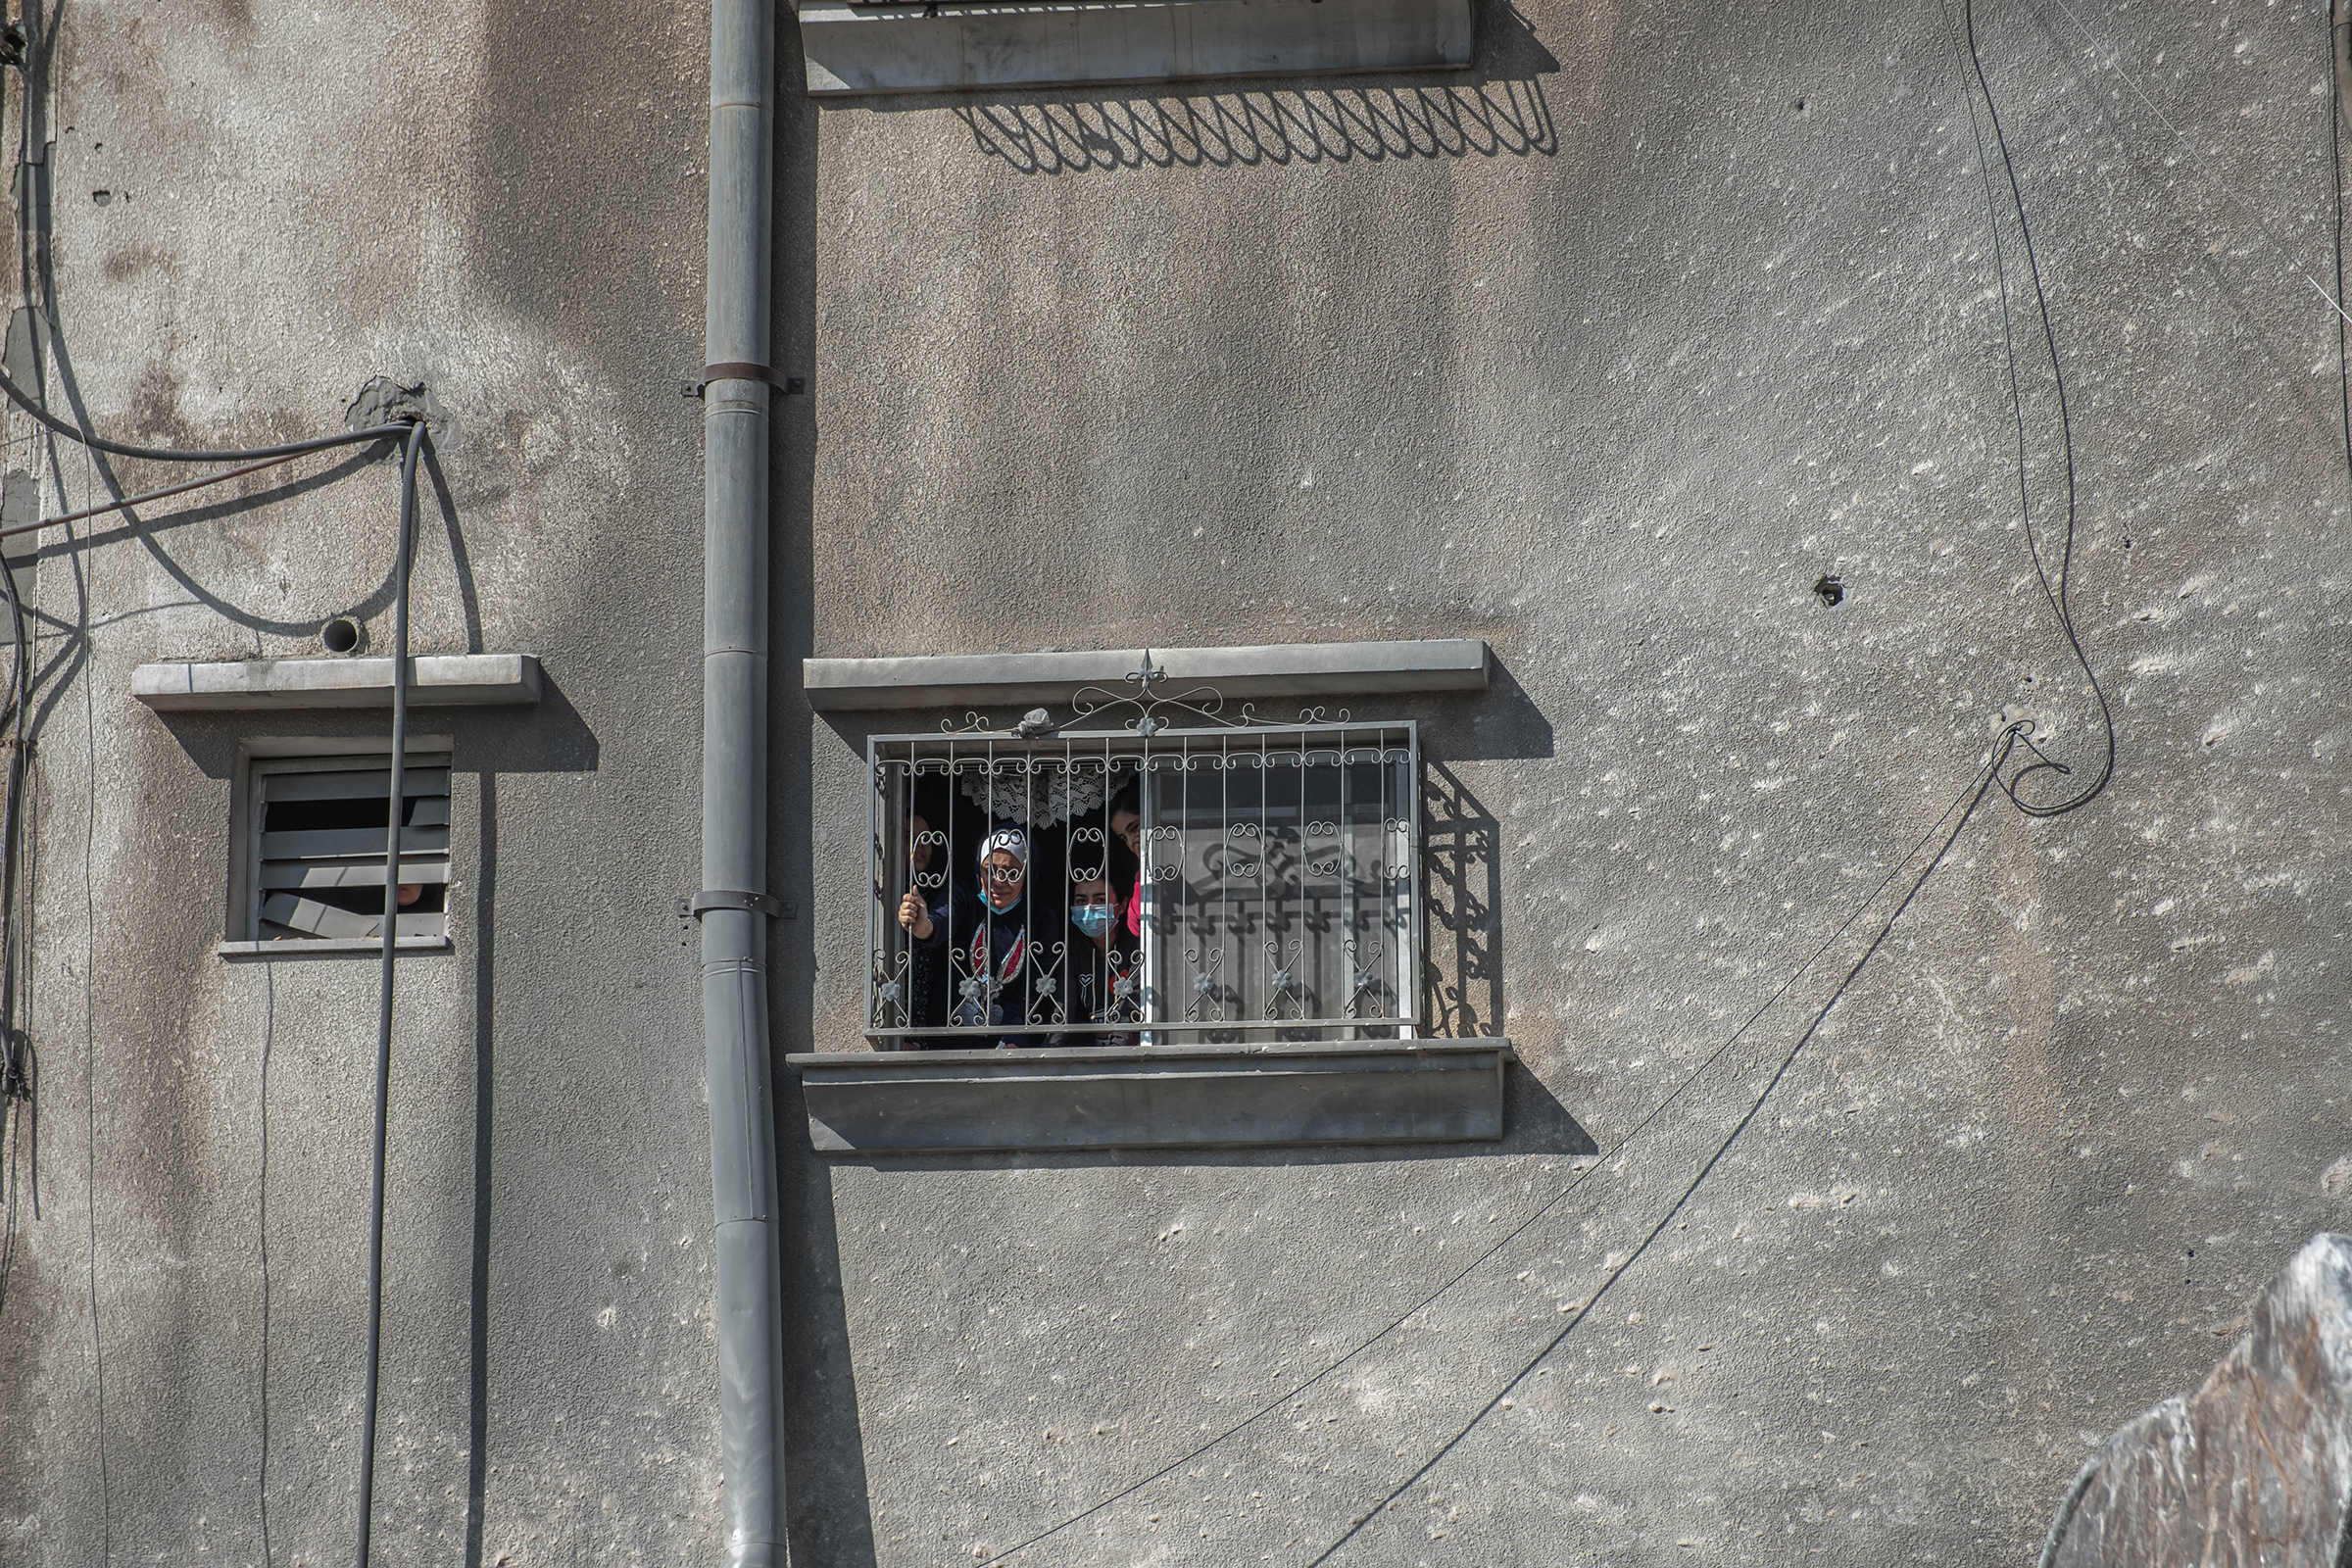 Palestinian women look out from a window at the rubble of a destroyed house in Gaza City on May 16.